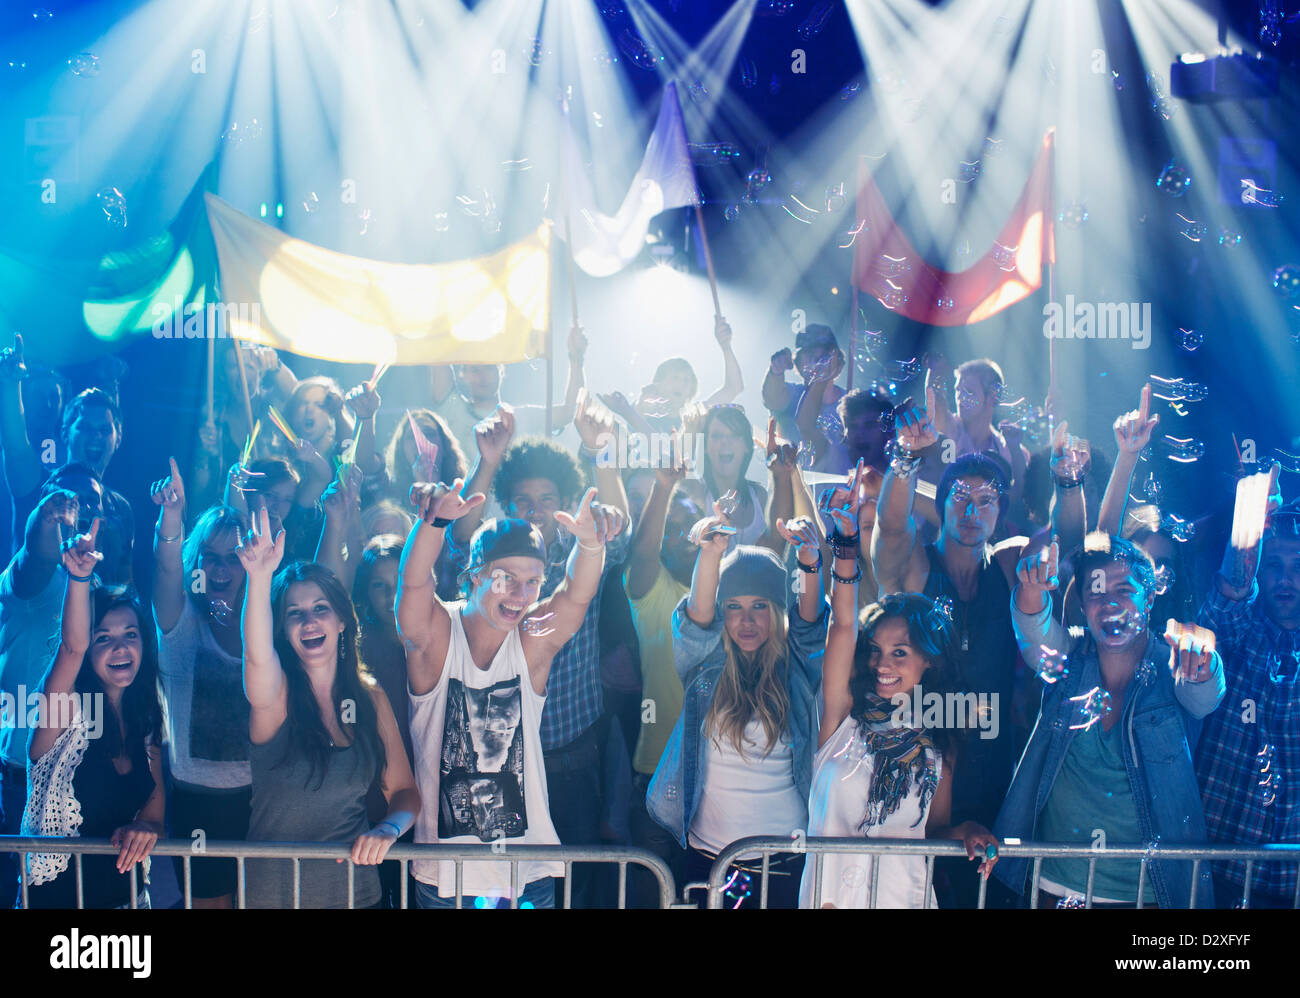 Portrait of enthusiastic crowd at concert - Stock Image